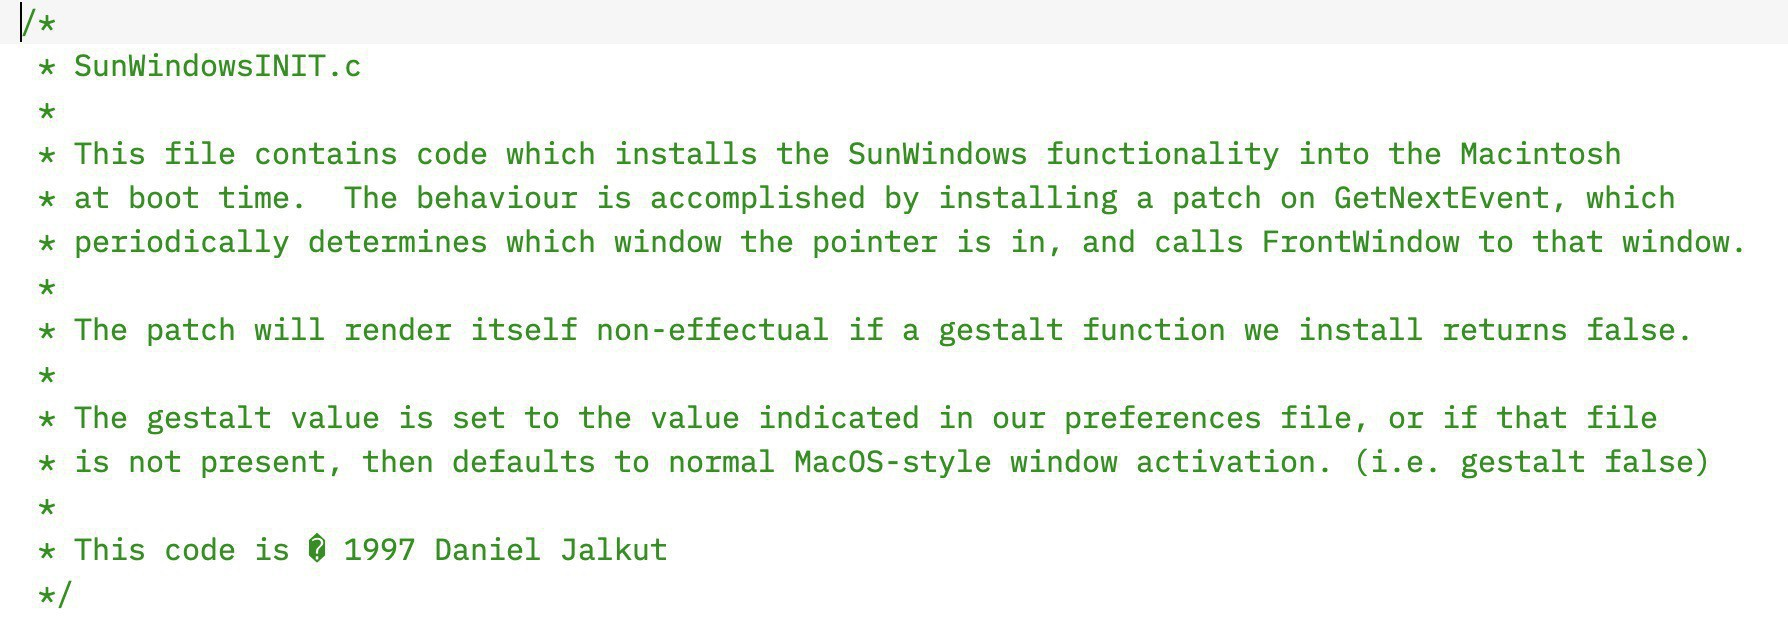 "Screenshot of source code with comments: ""This file contains code which installs the SunWindows functionality into the Macintosh&10;at boot time.  The behaviour is accomplished by installing a patch on GetNextEvent, which&10;periodically determines which window the pointer is in, and calls FrontWindow to that window.&10;The patch will render itself non-effectual if a gestalt function we install returns false.&10;The gestalt value is set to the value indicated in our preferences file, or if that file &10;is not present, then defaults to normal MacOS-style window activation. (i.e. gestalt false)&10;This code is � 1997 Daniel Jalkut"""